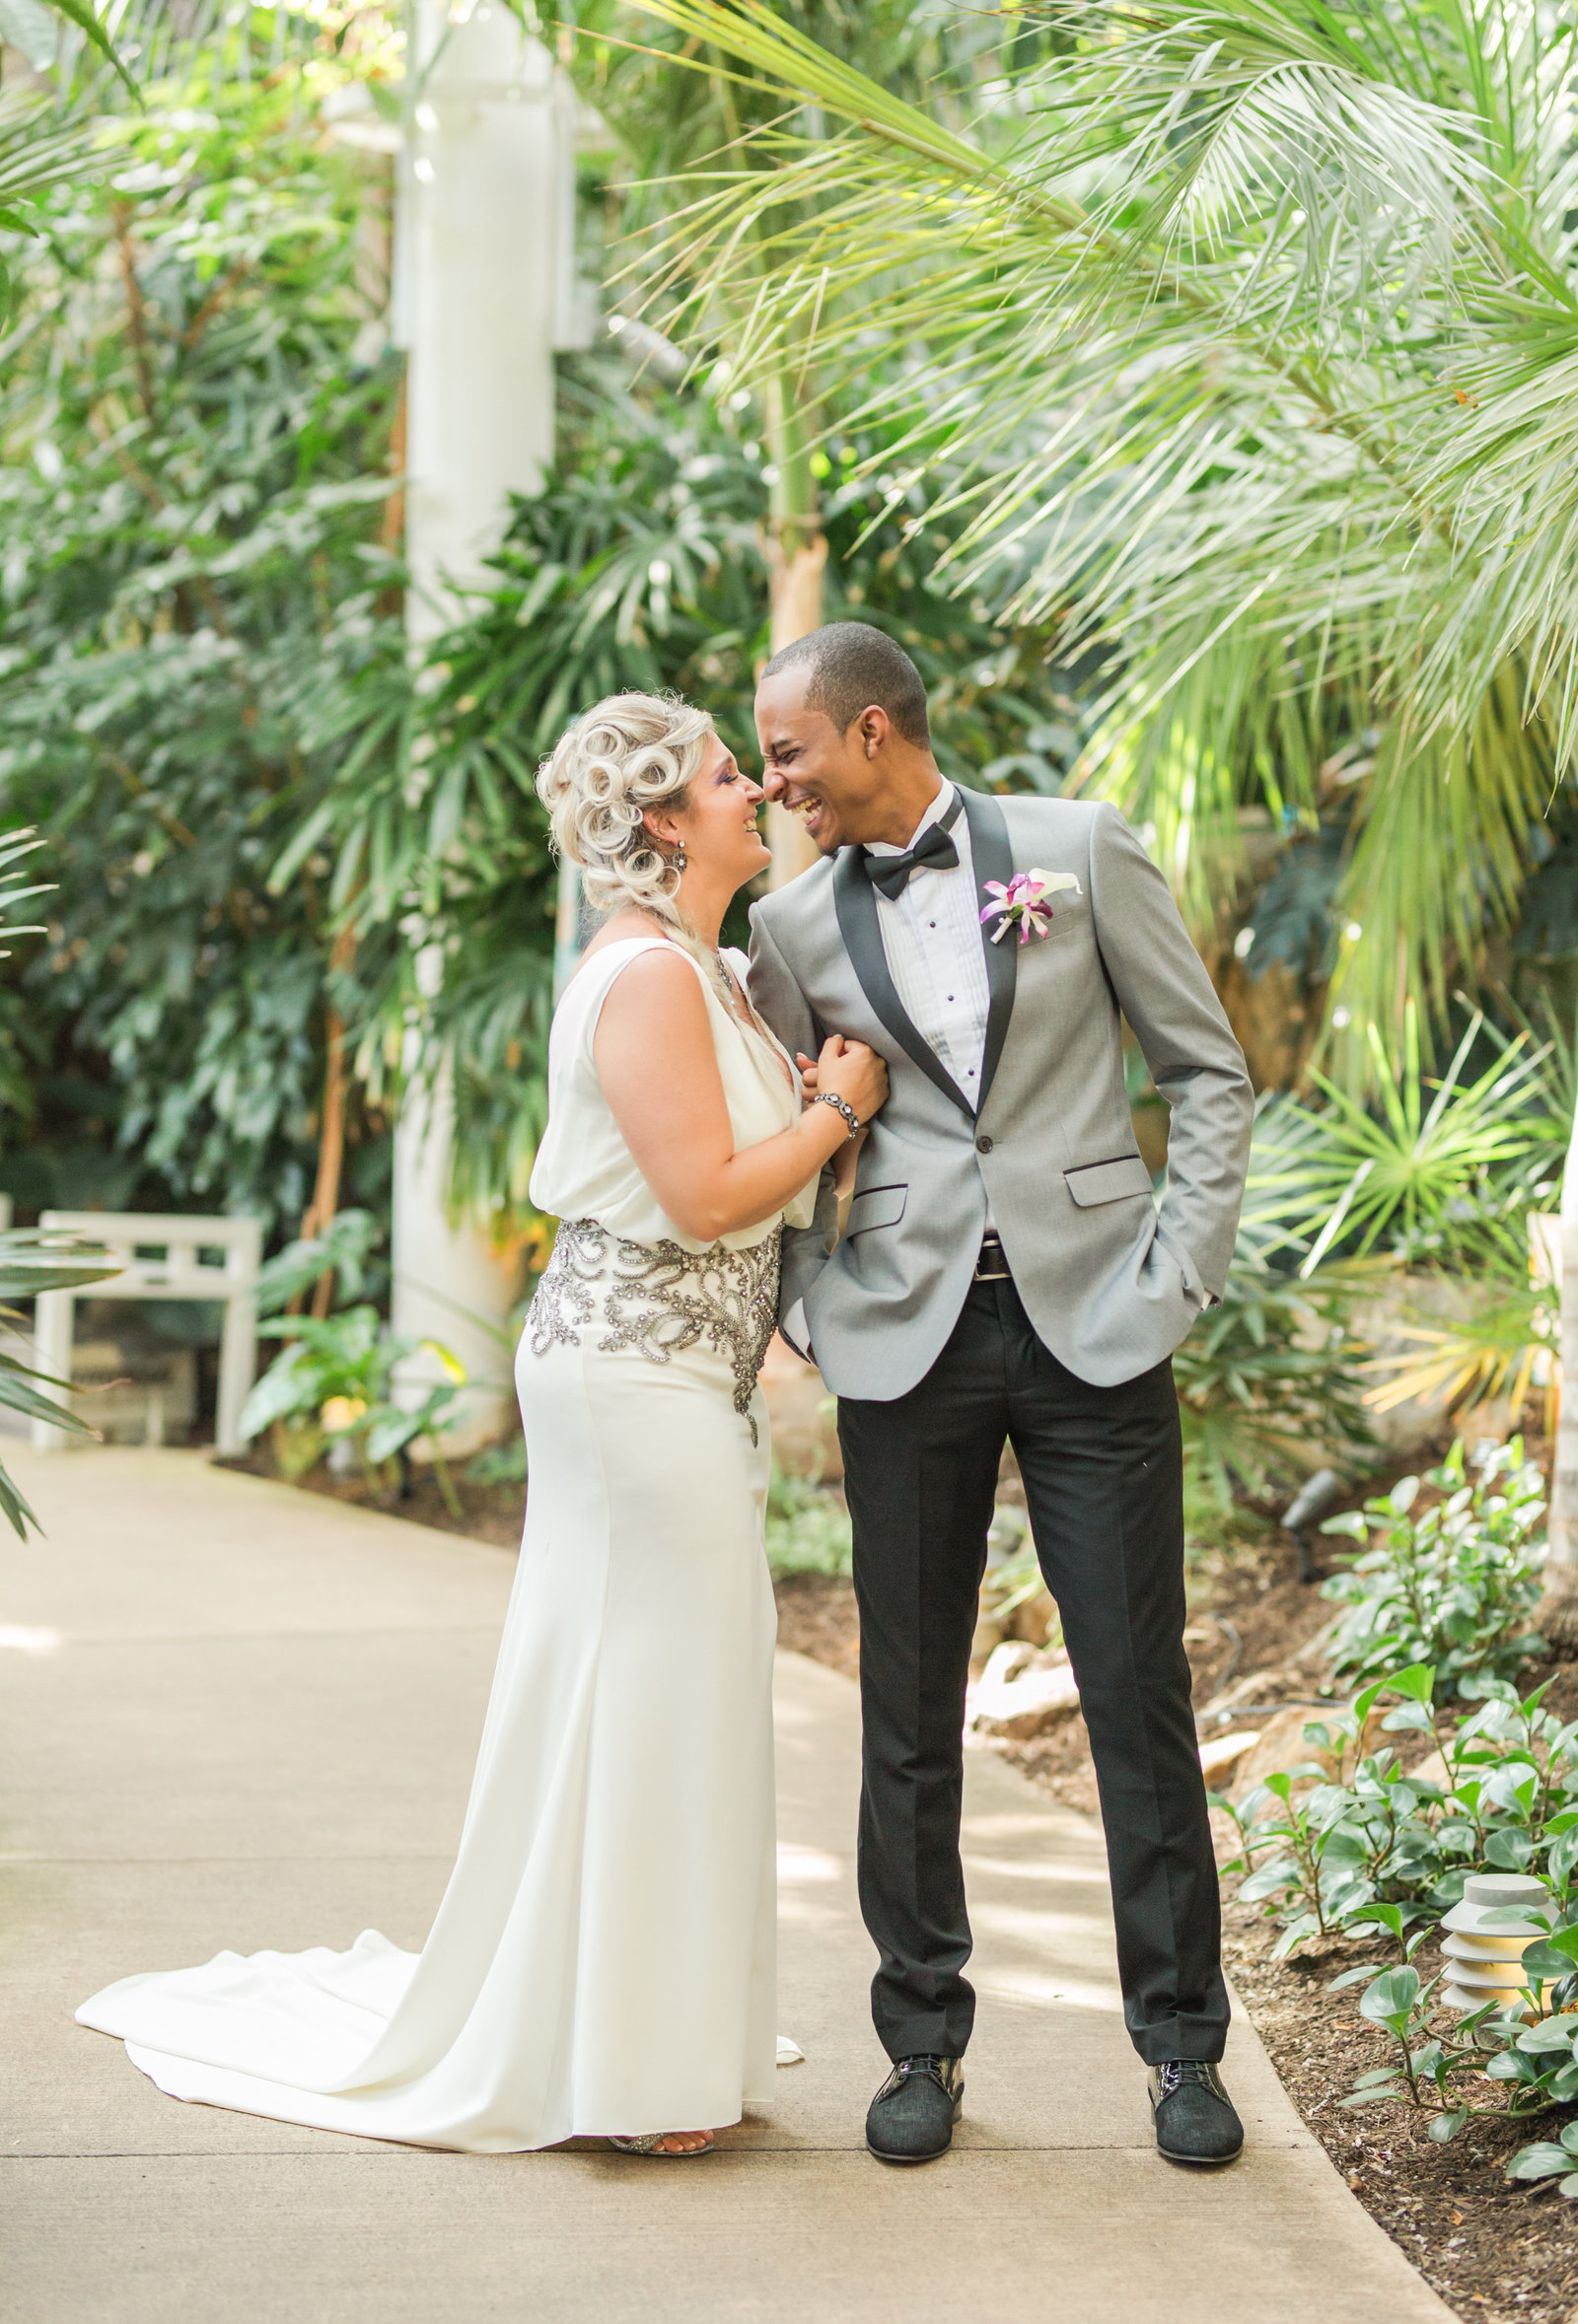 phipps-conservatory-wedding-allison-ewing-photography-022-1